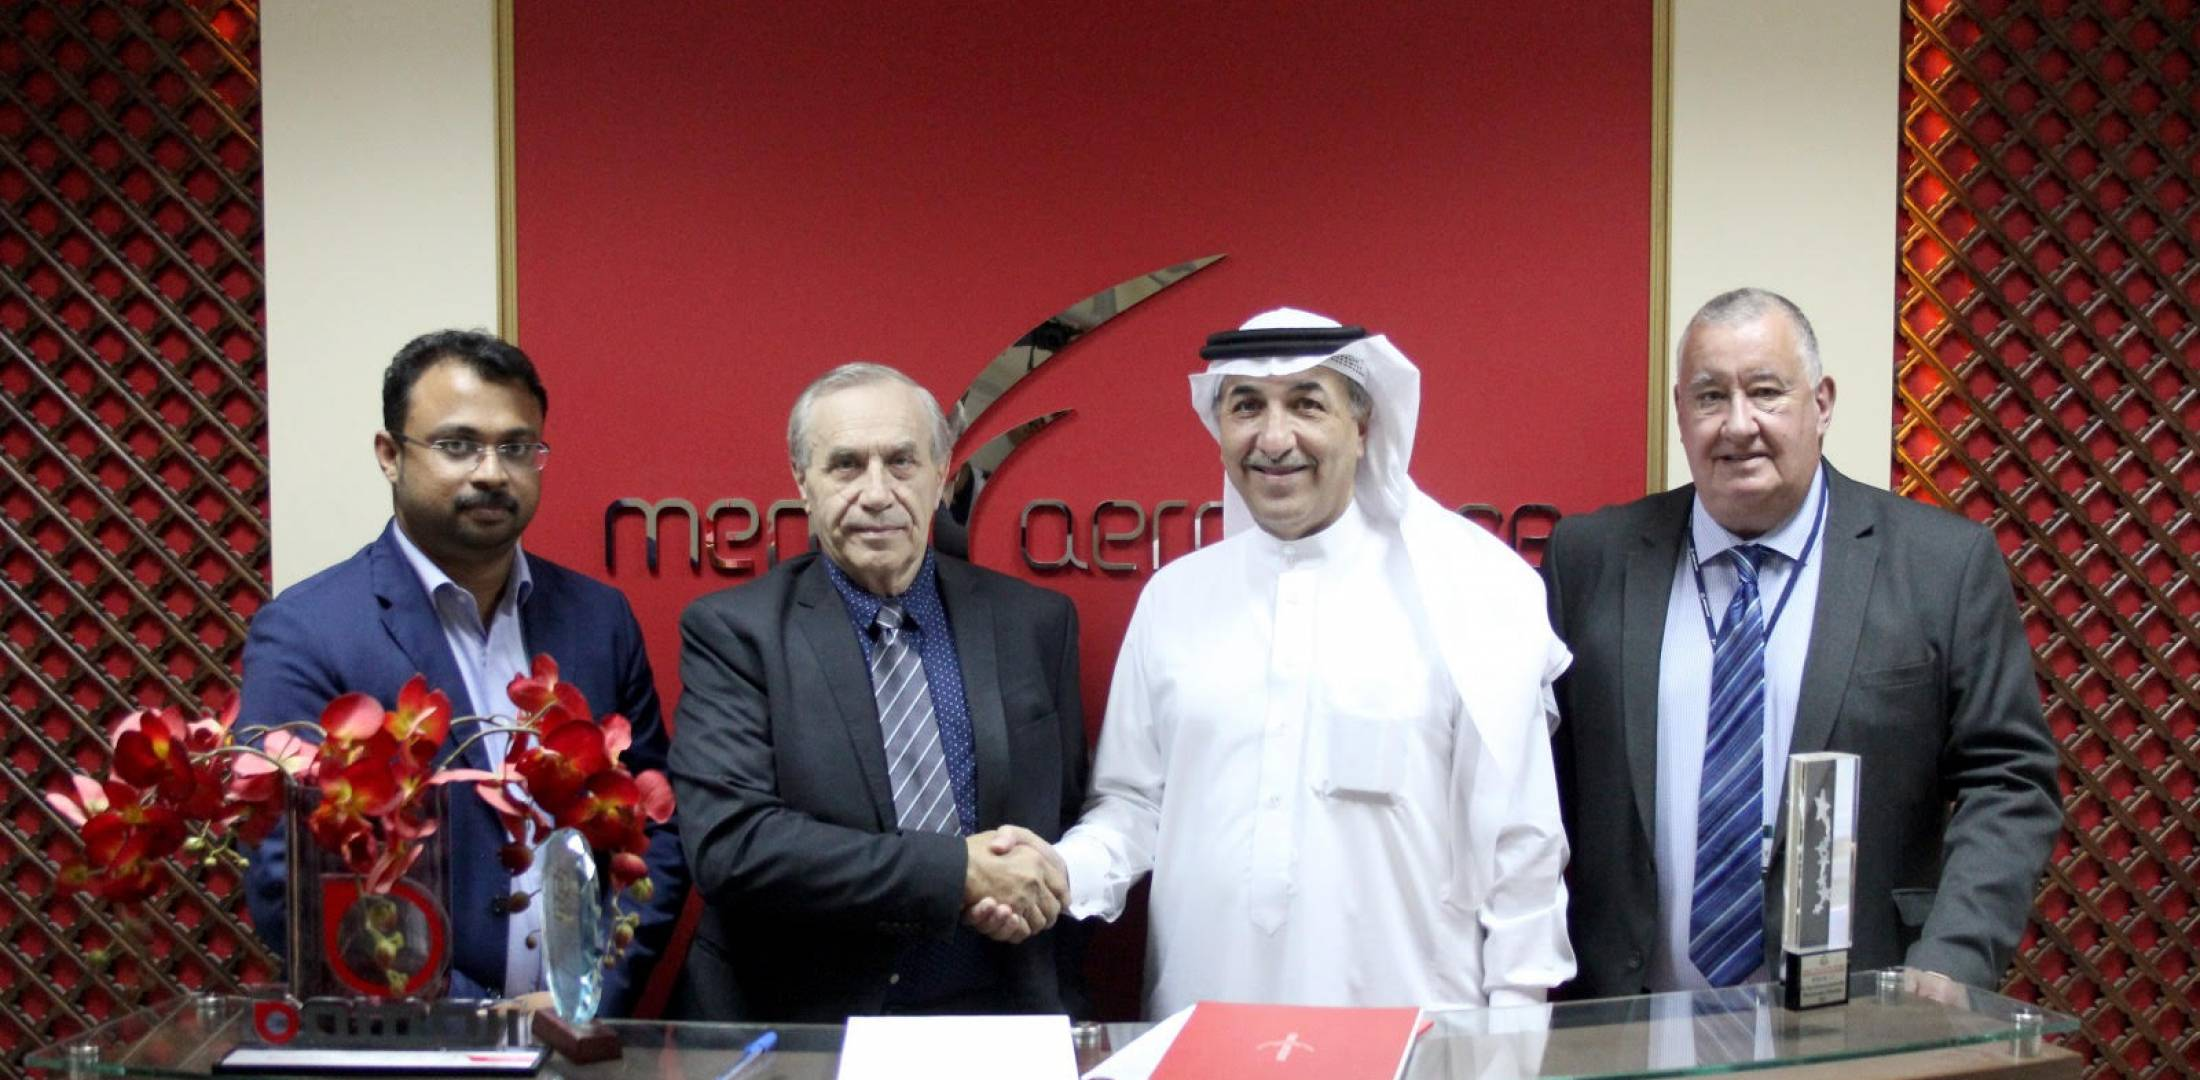 MENA Aerospace's managing director, Mohammed Juman, shakes hands with Alain Auger, Executive Vice President, CSDS (Credit MENA Aerospace)